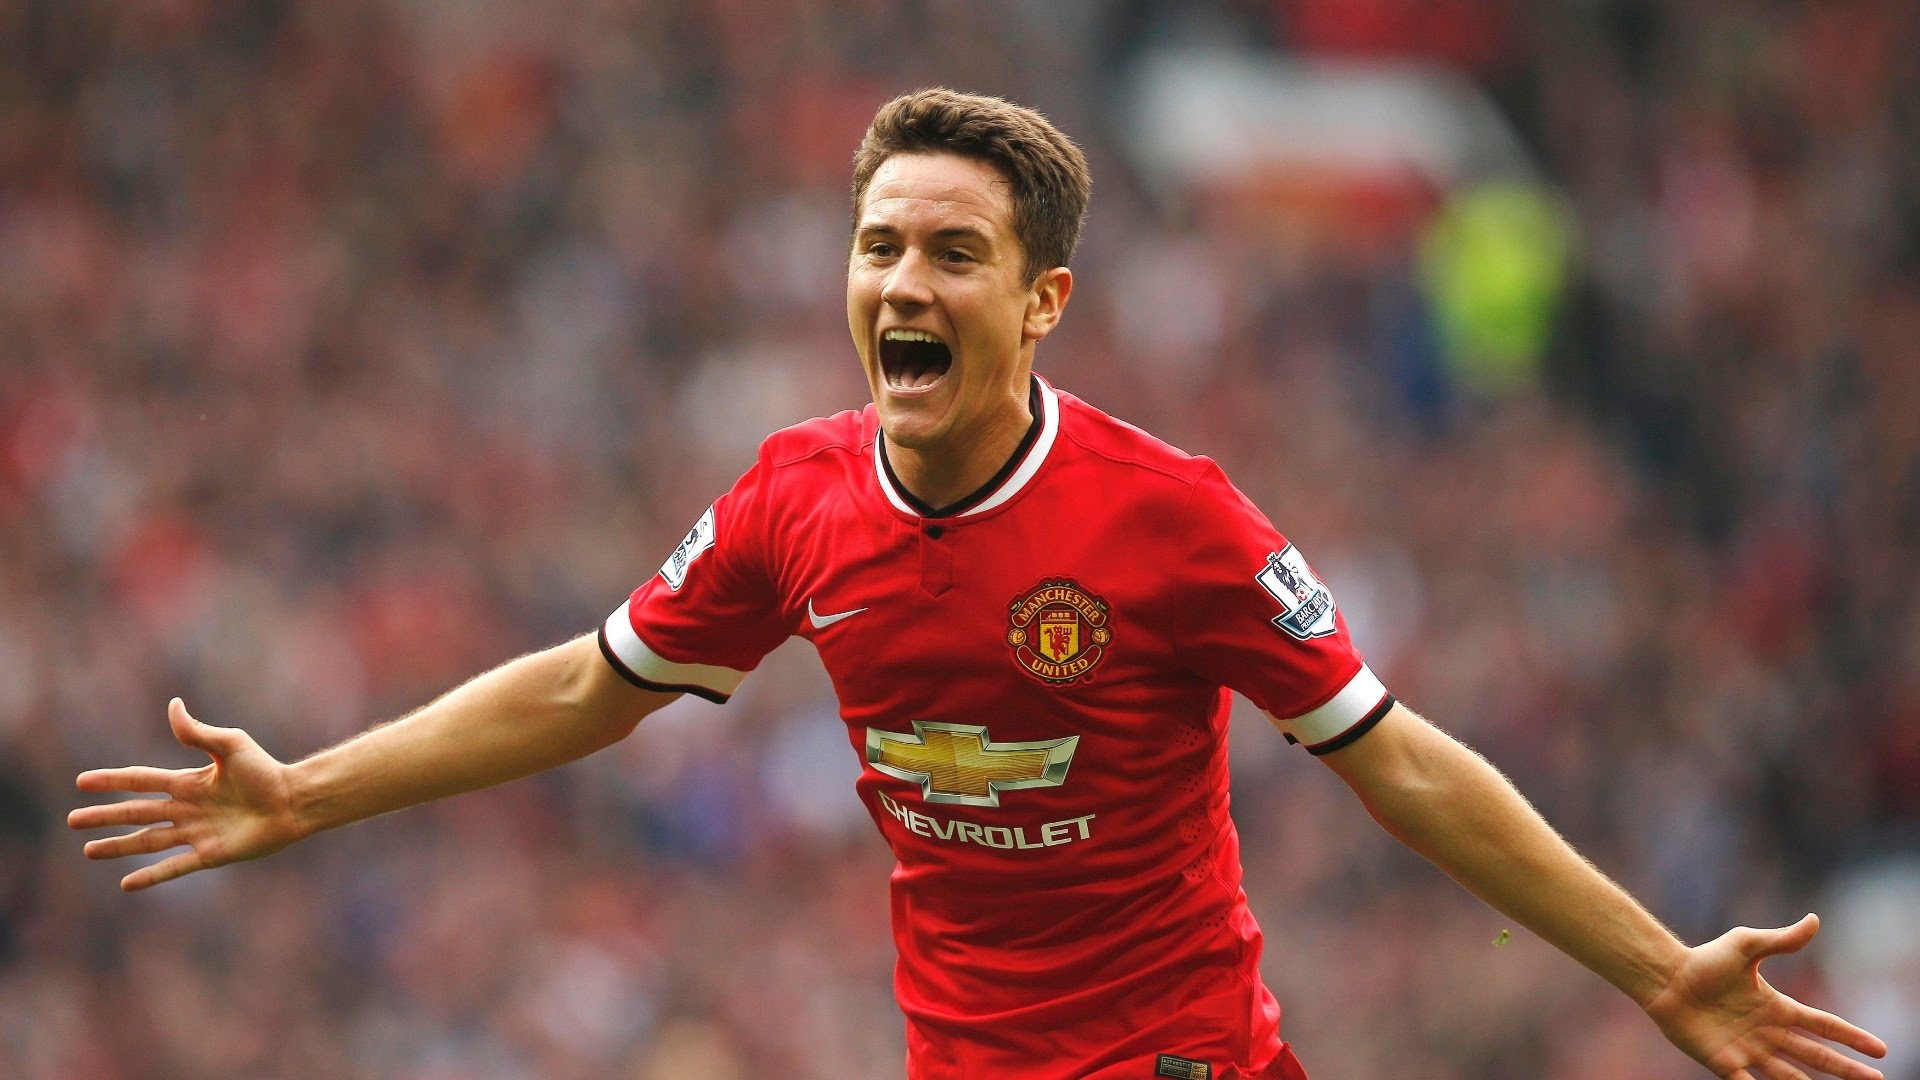 Berita Bola : Ander Herrera The Next Paul Scholes